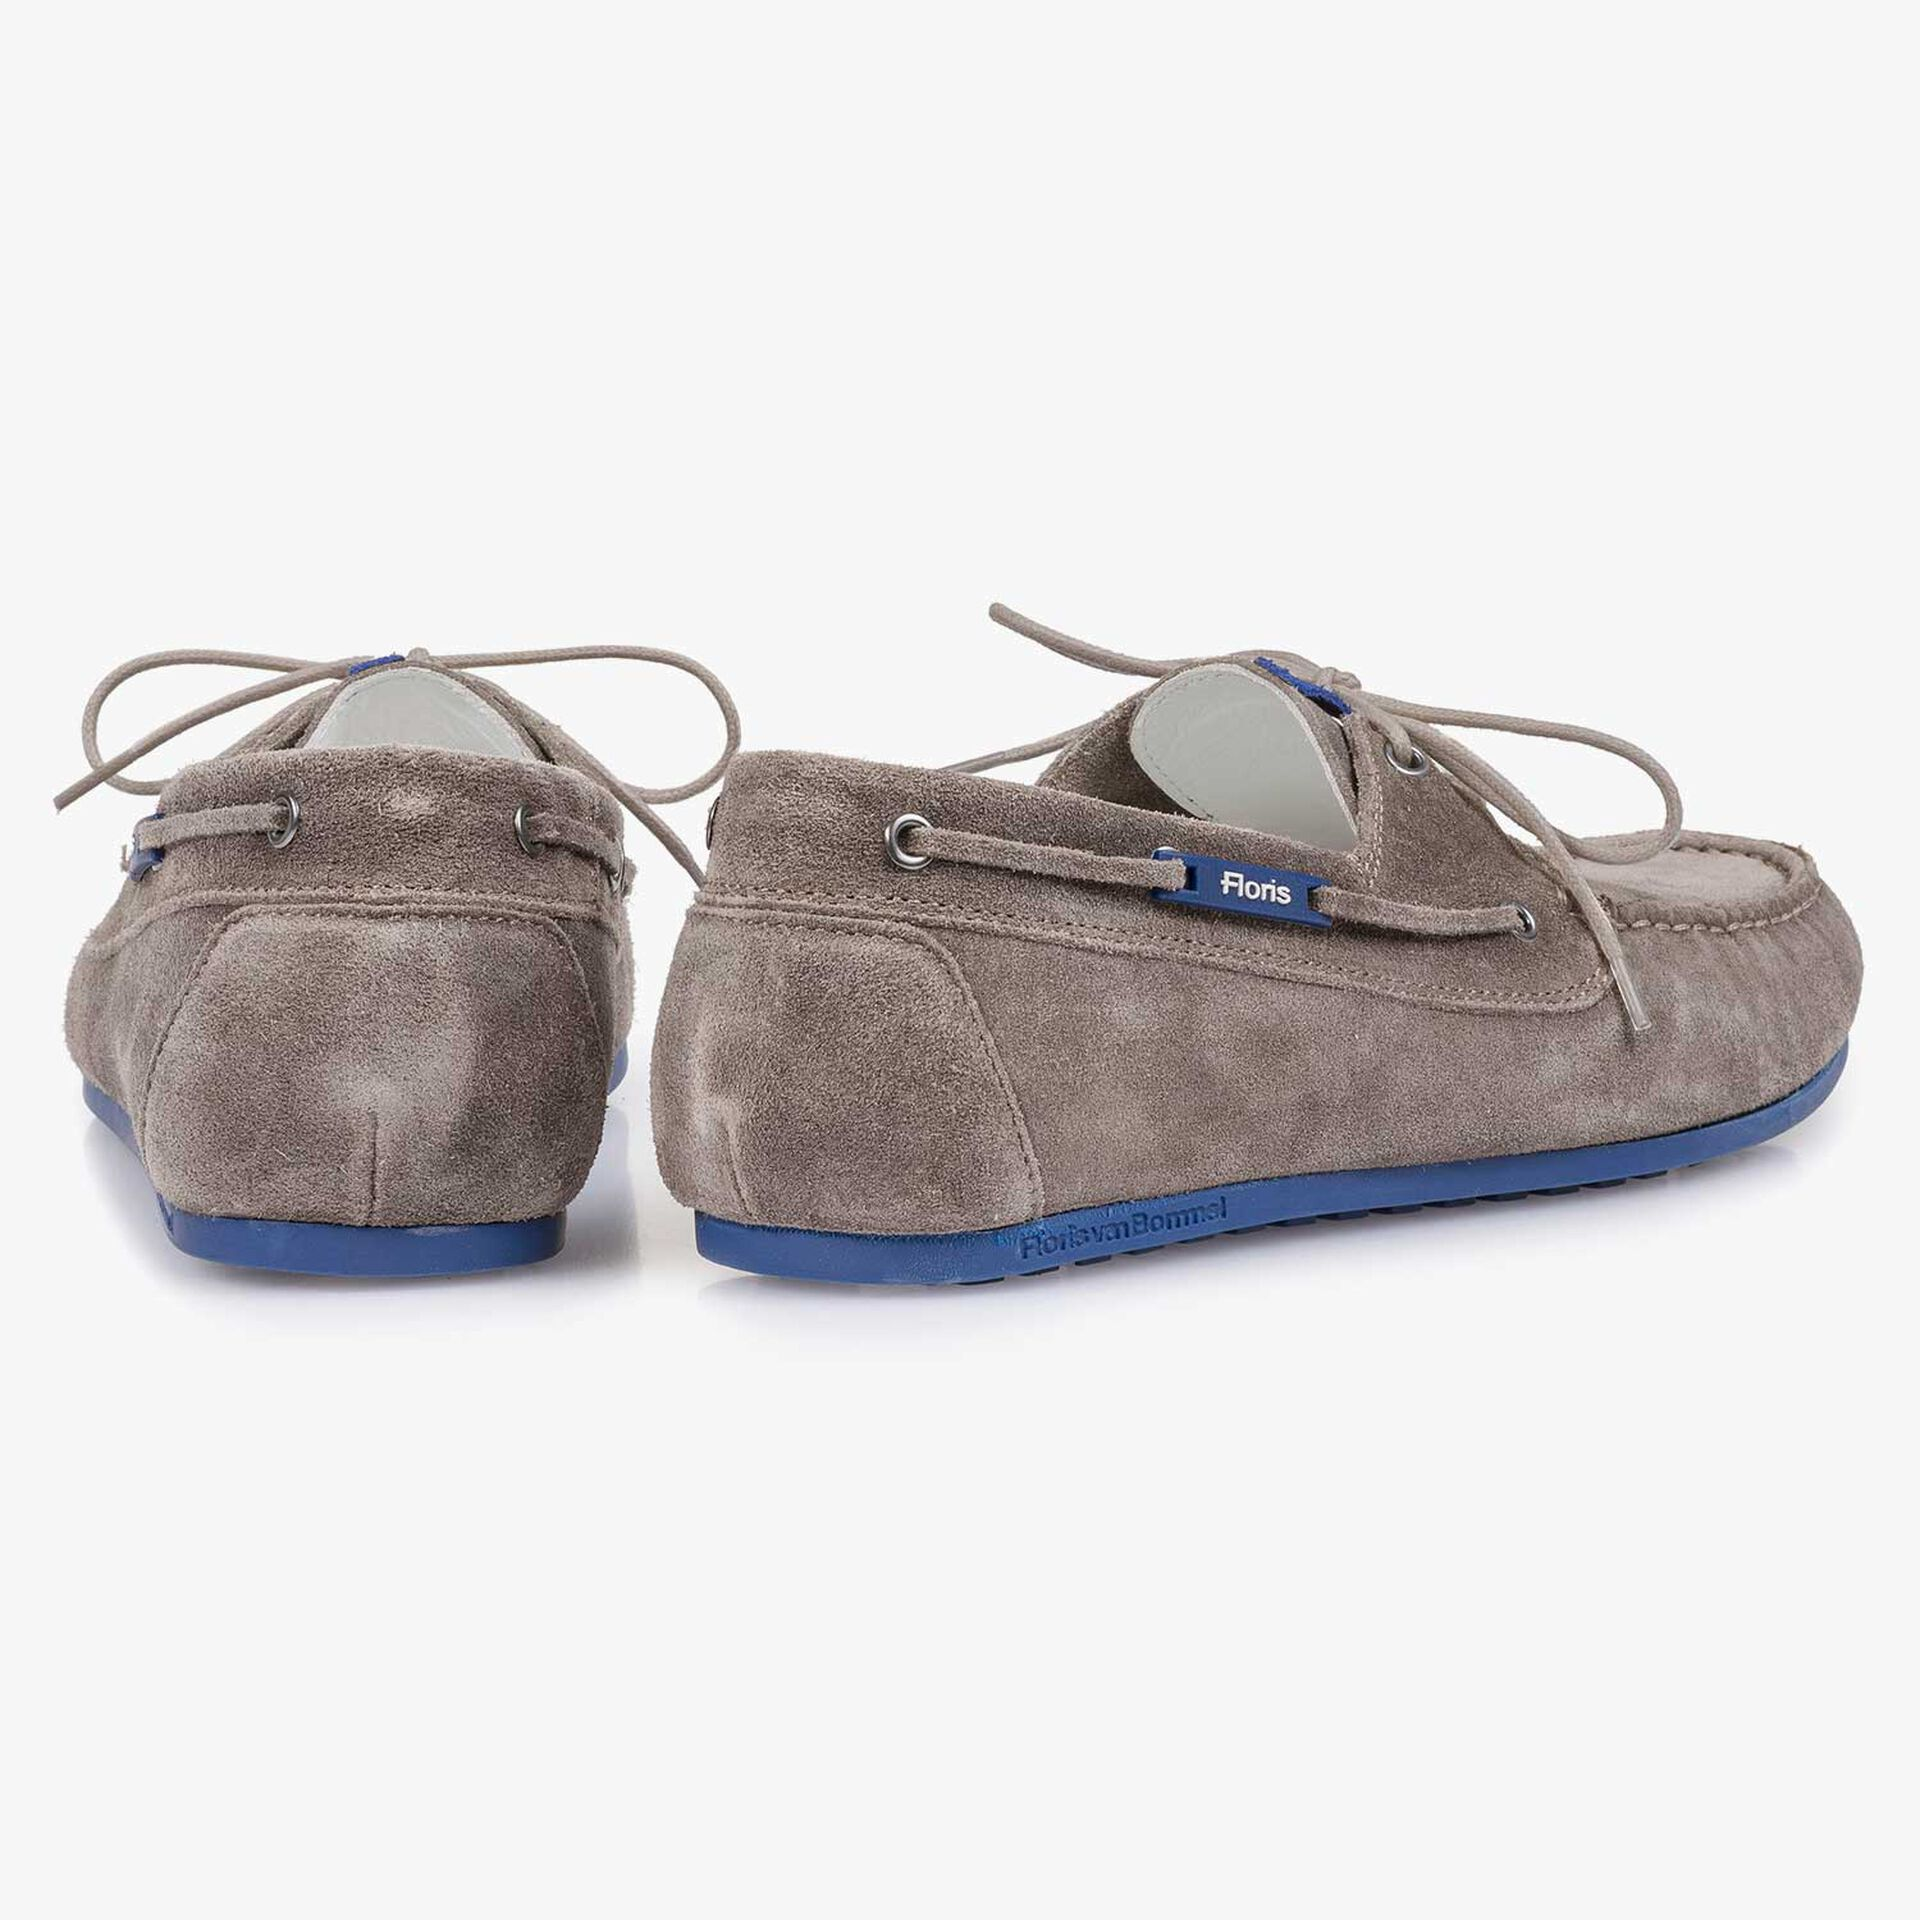 Taupe-coloured slightly buffed suede leather sailing shoe